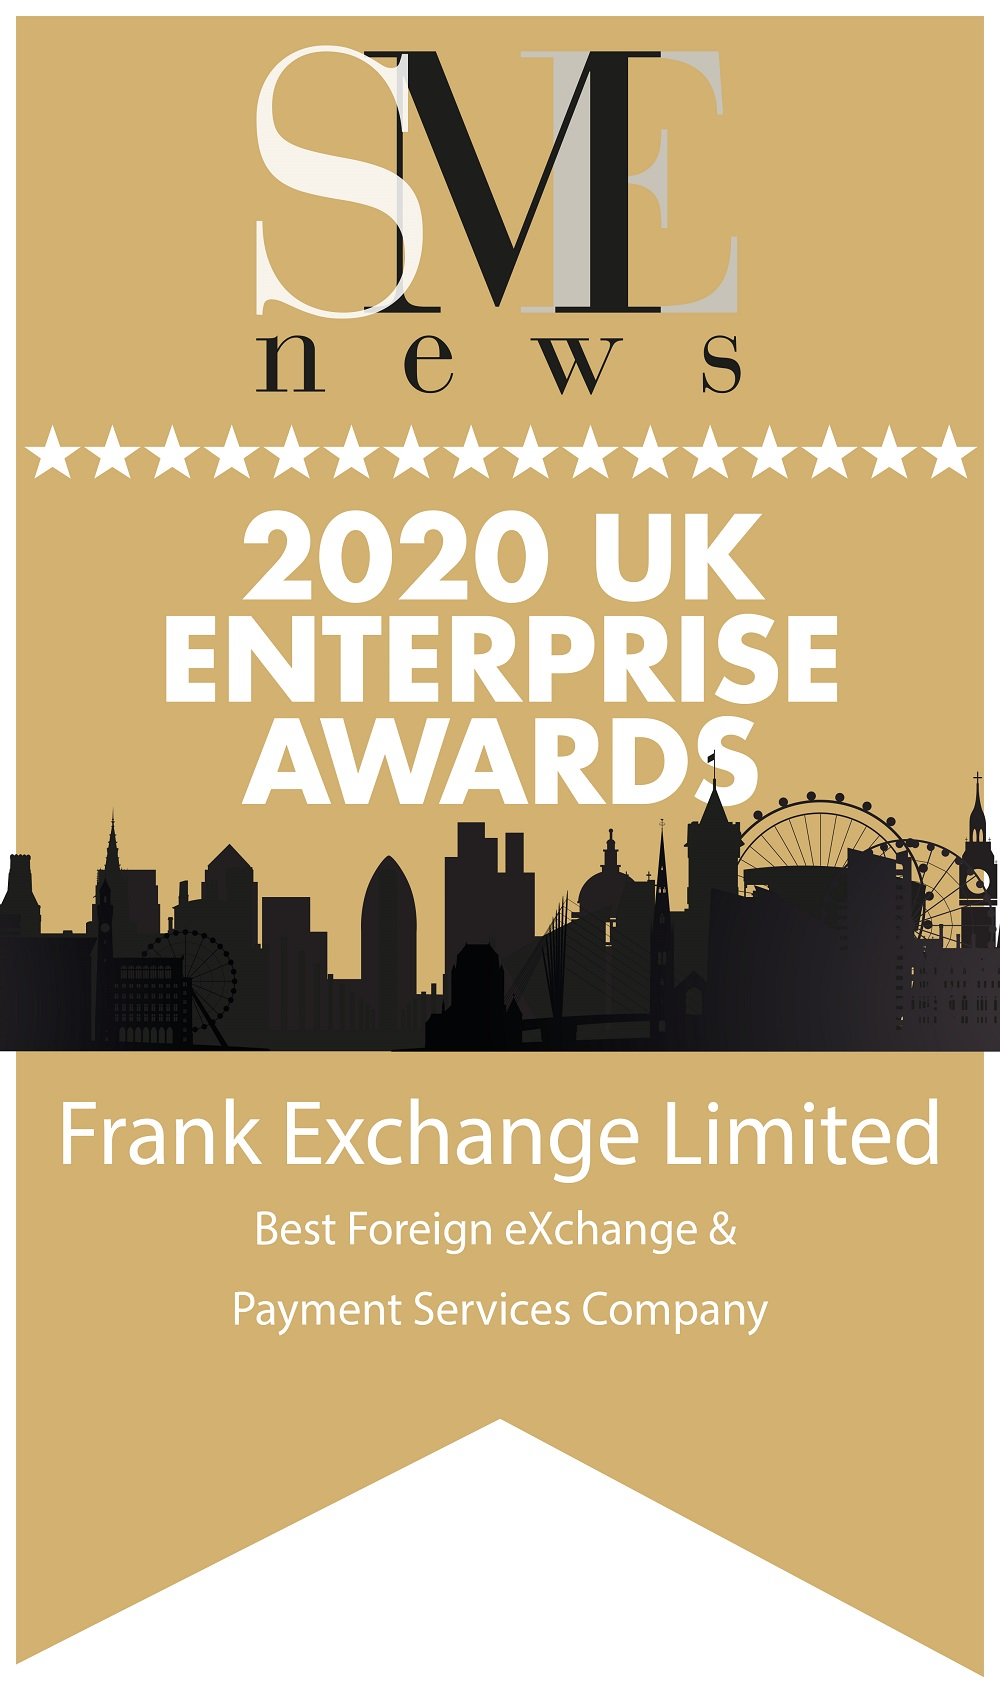 UK Enterprise Awards 2020 Winners